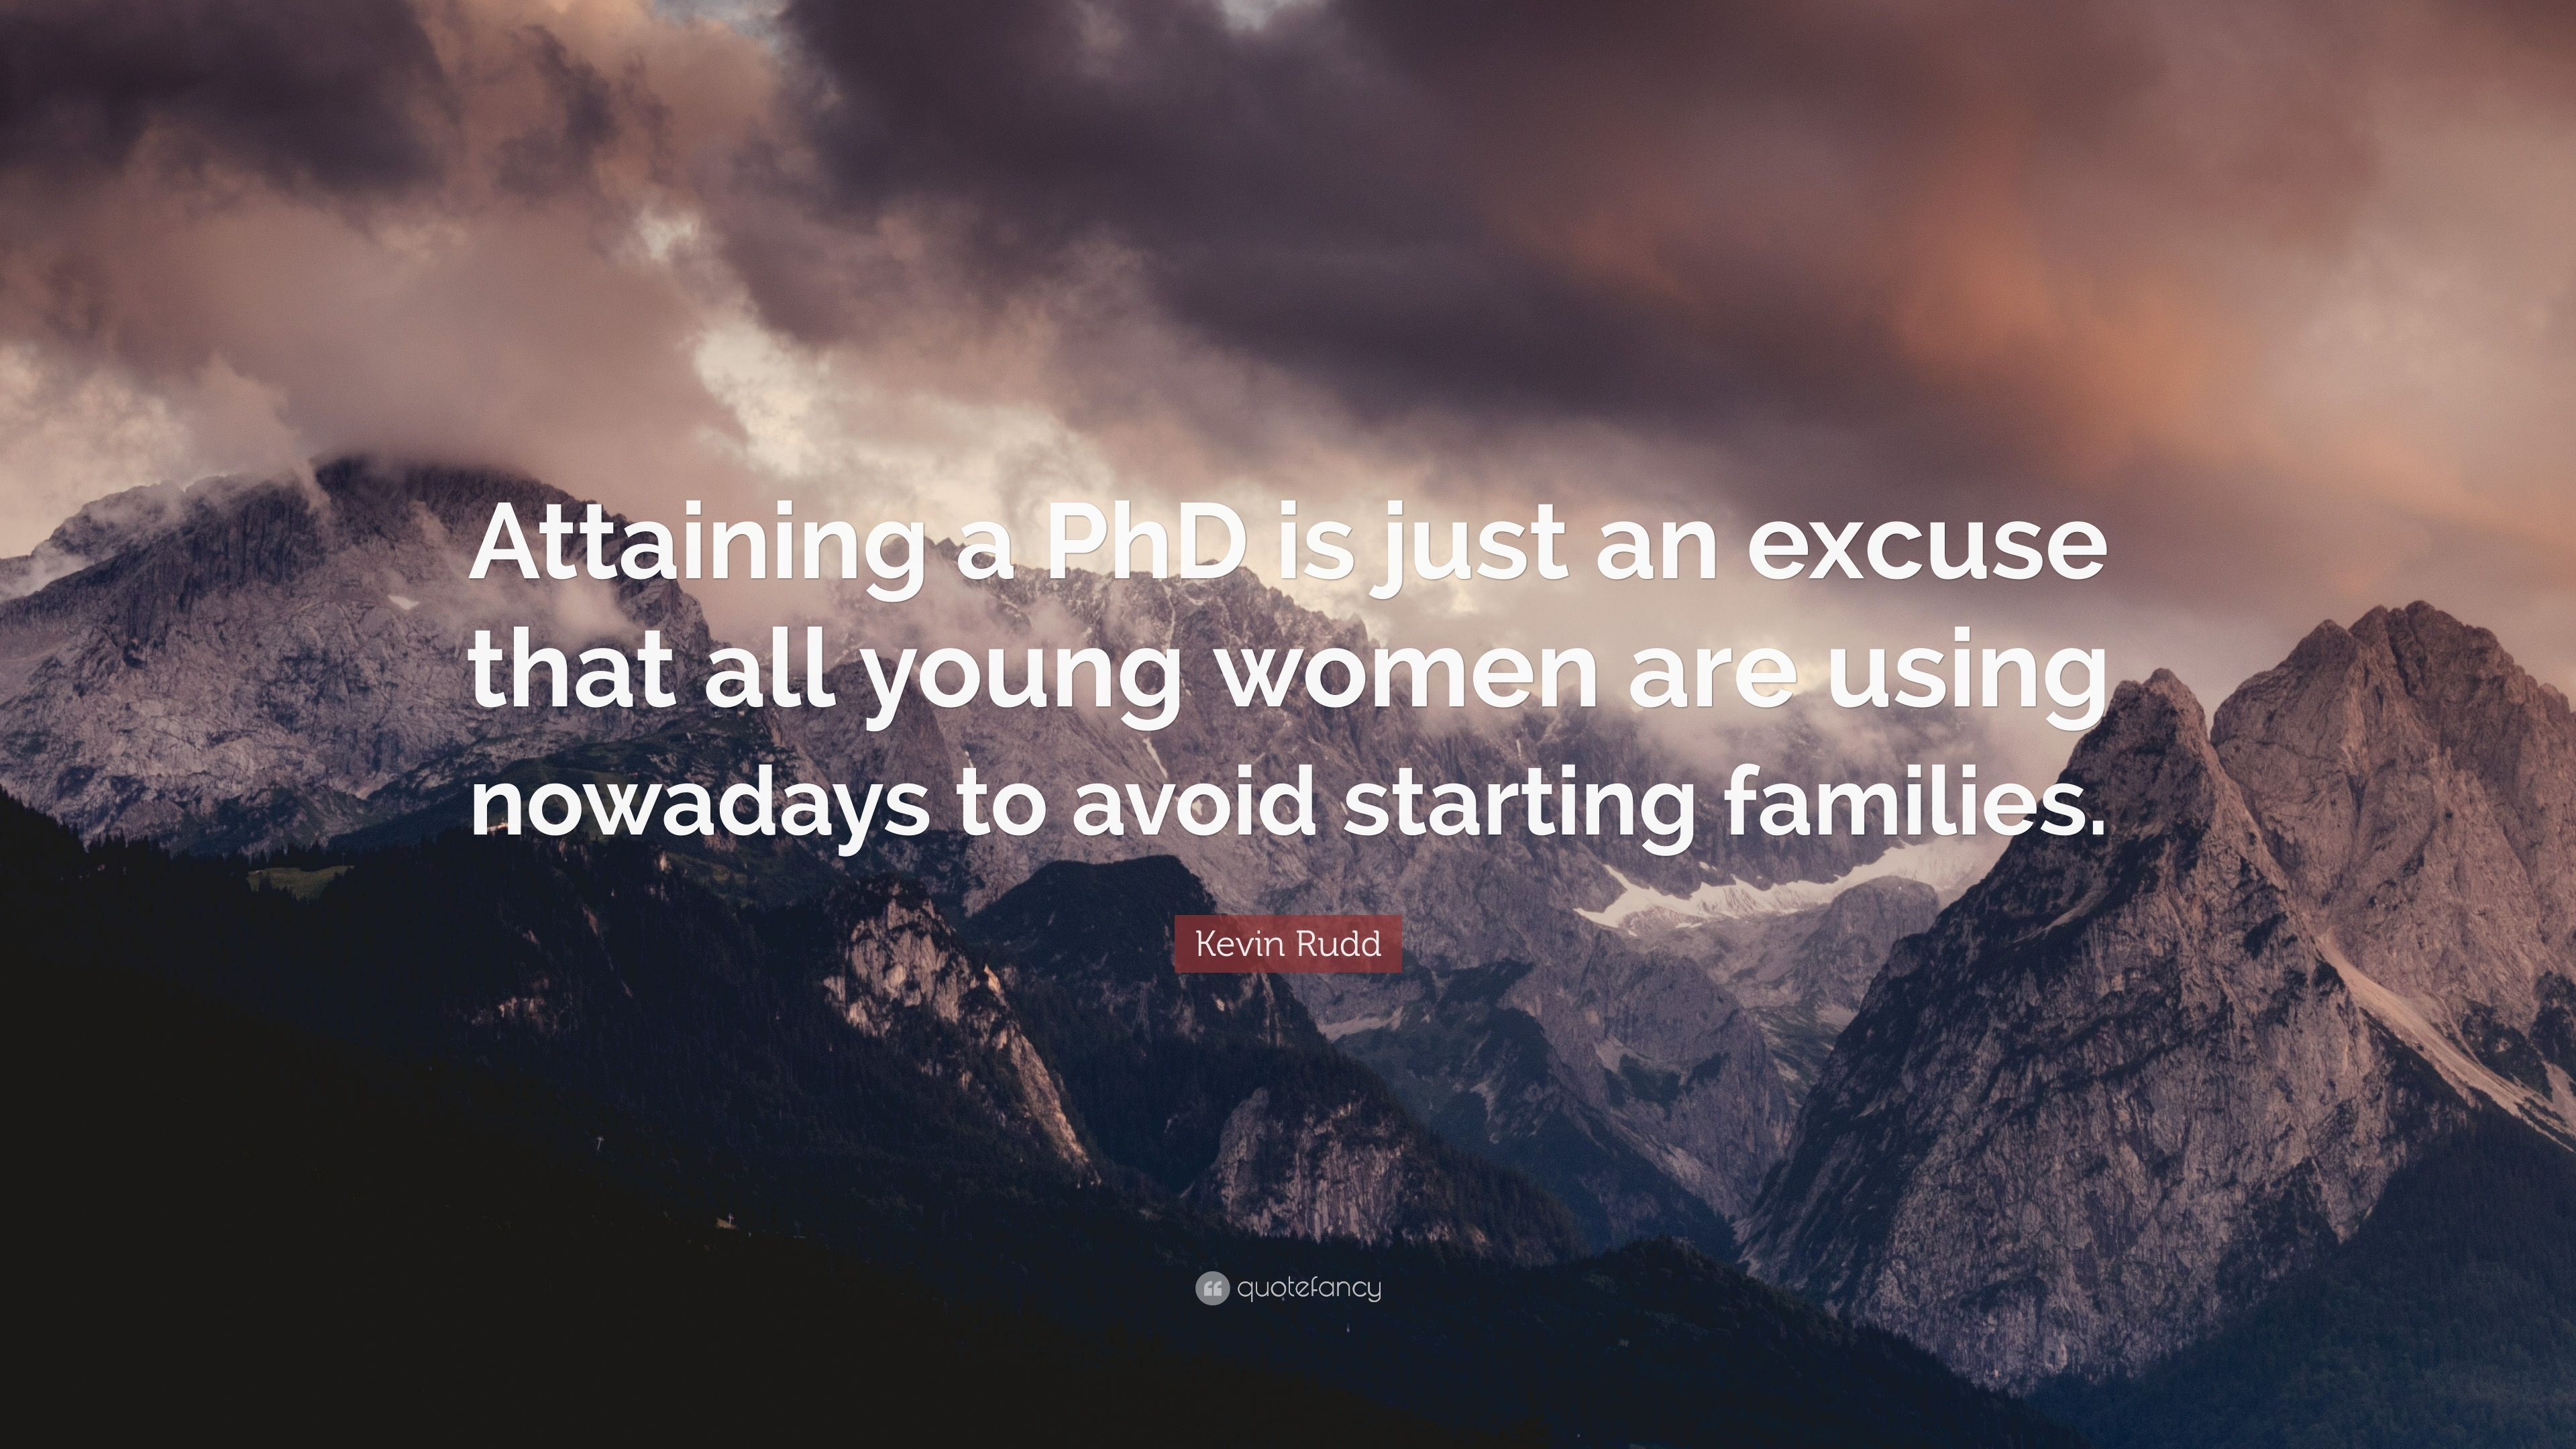 Kevin Rudd Quote Attaining A Phd Is Just An Excuse That All Young Women Are Using Nowadays To Avoid Starting Families 7 Wallpapers Quotefancy